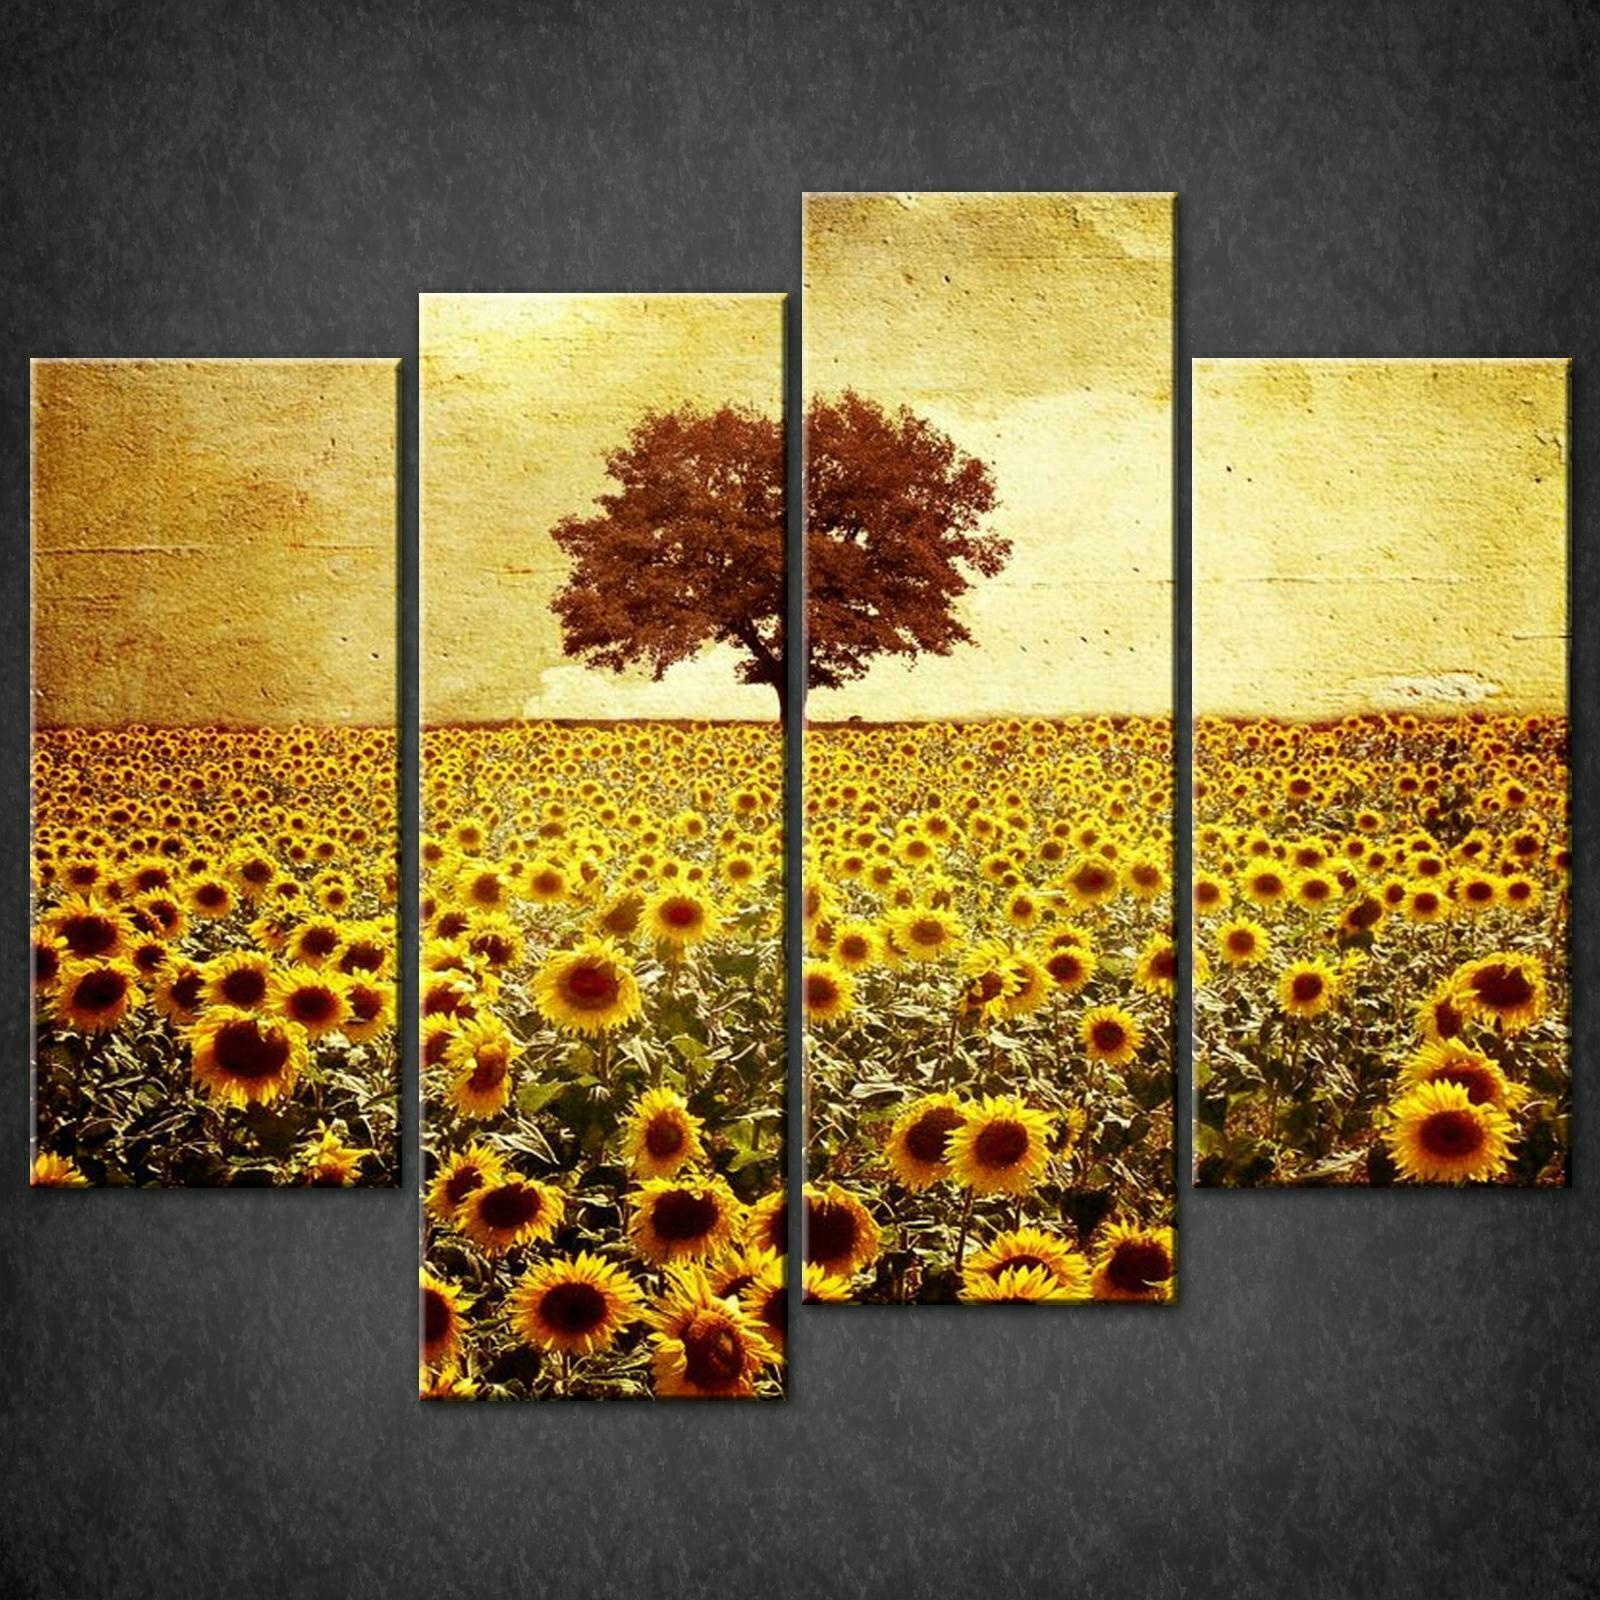 SUNFLOWERS FIELD CANVAS PRINT PICTURE WALL ART FREE UK POSTAGE VARIETY OF GrößeS